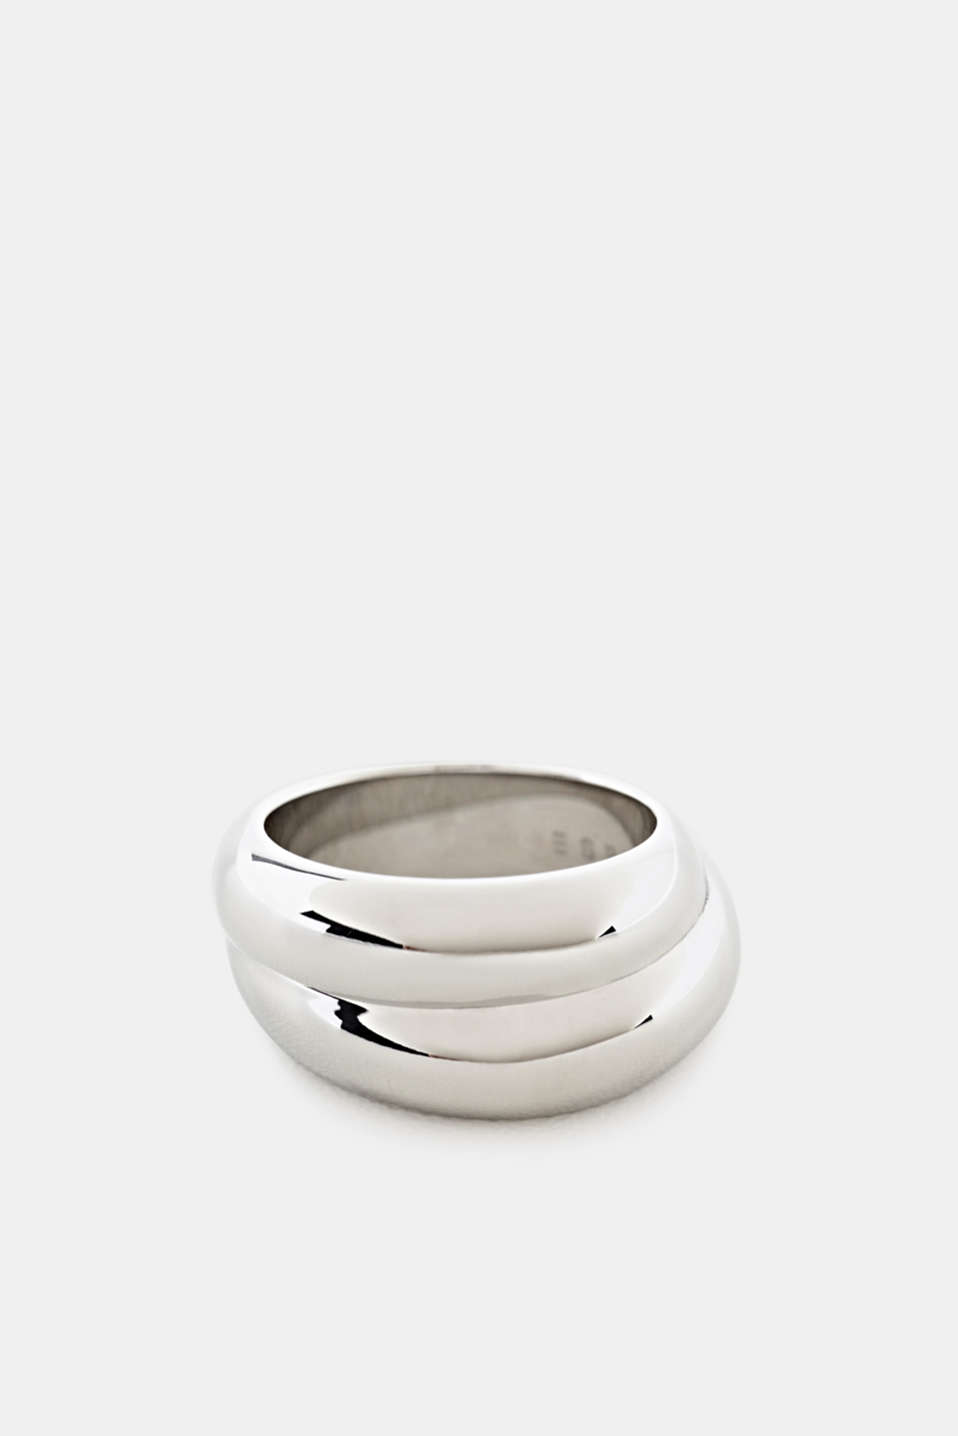 Stainless steel statement ring, LCSILVER, detail image number 0